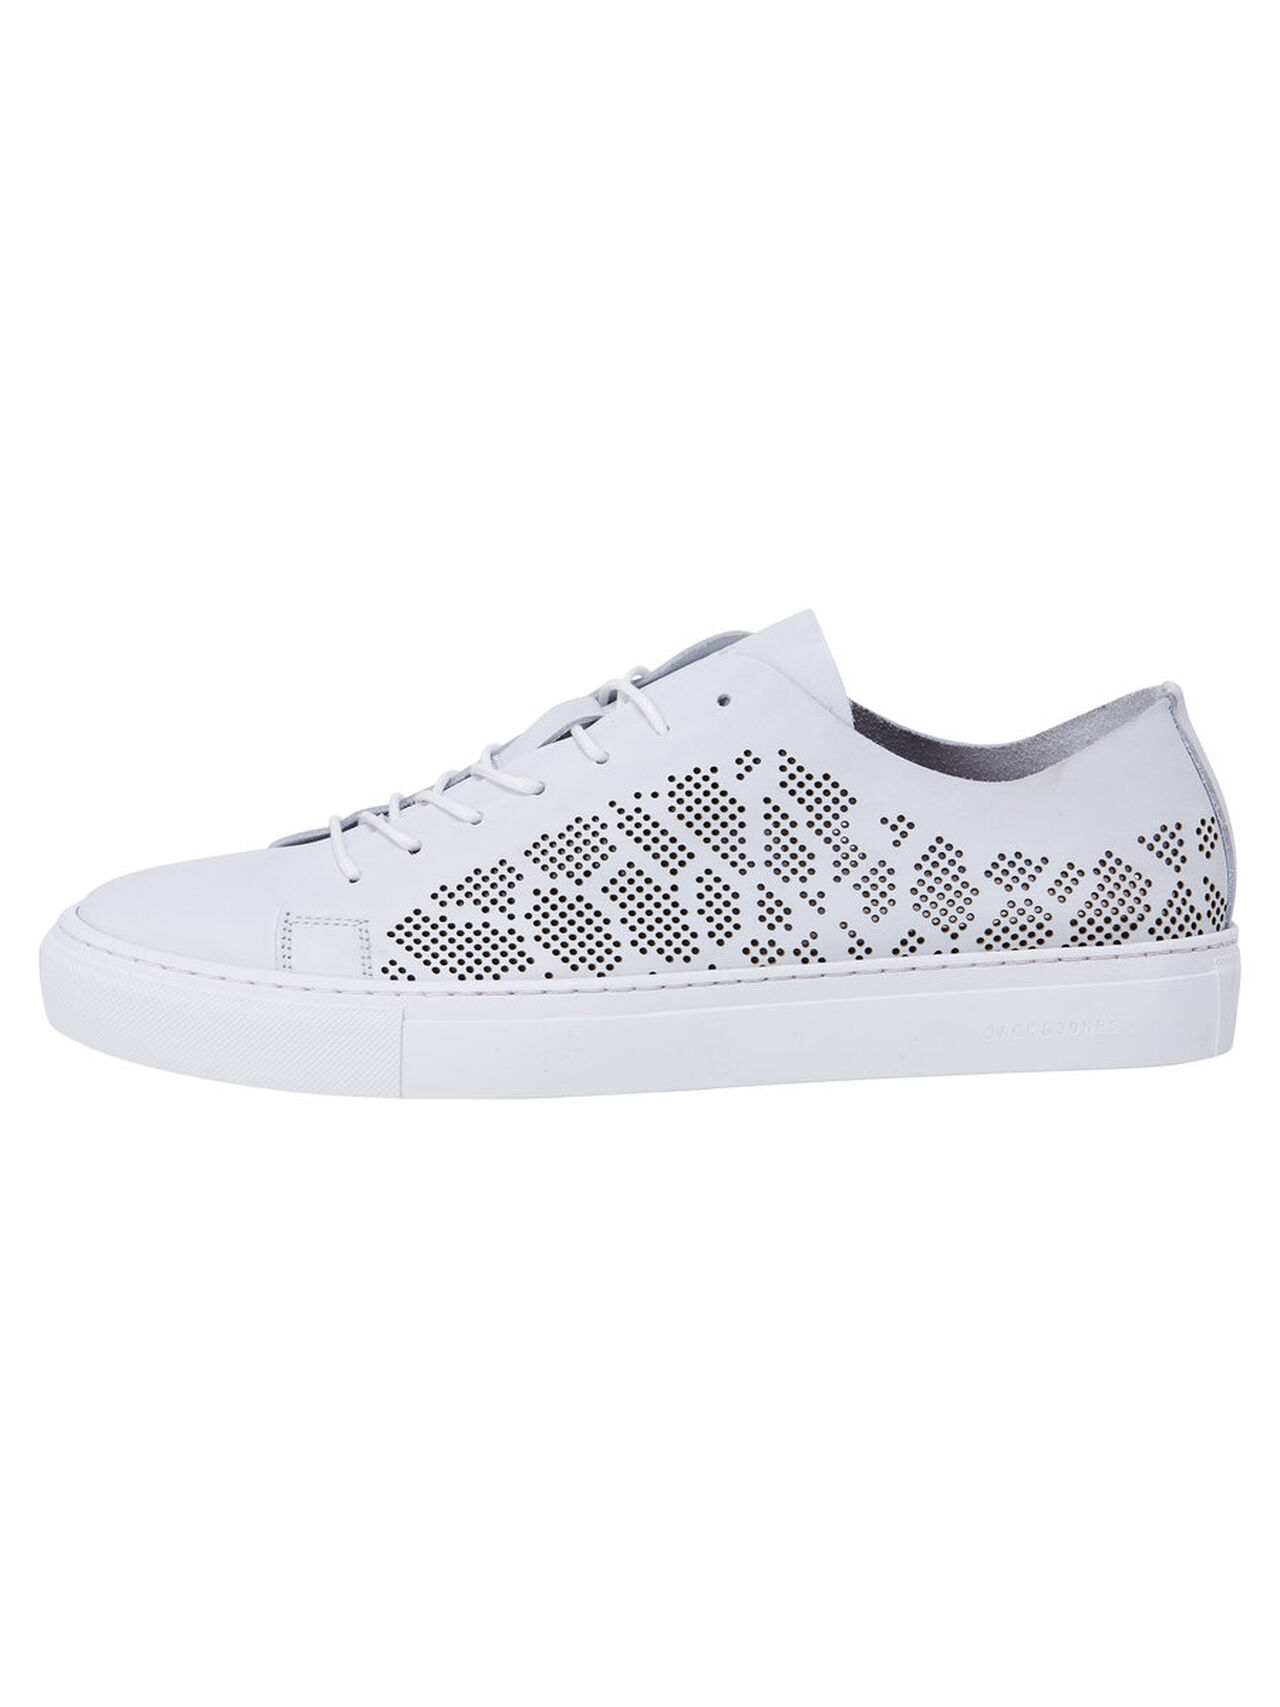 JACK & JONES Klassieke Sneakers Heren White thumbnail